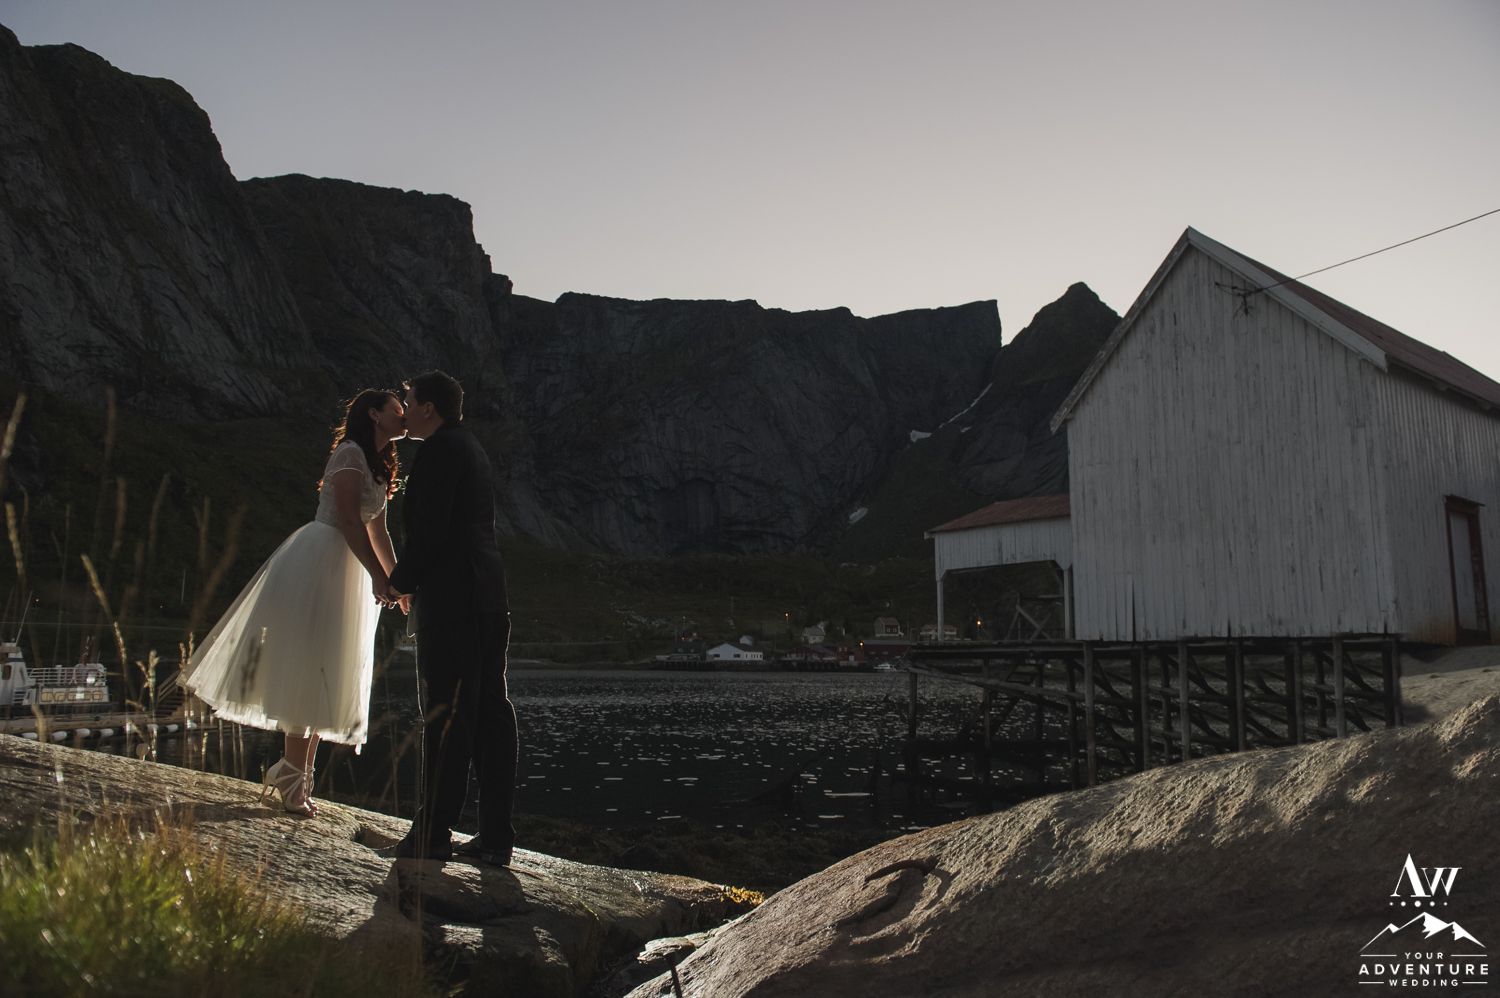 lofoten-islands-wedding-photos-your-adventure-wedding-95